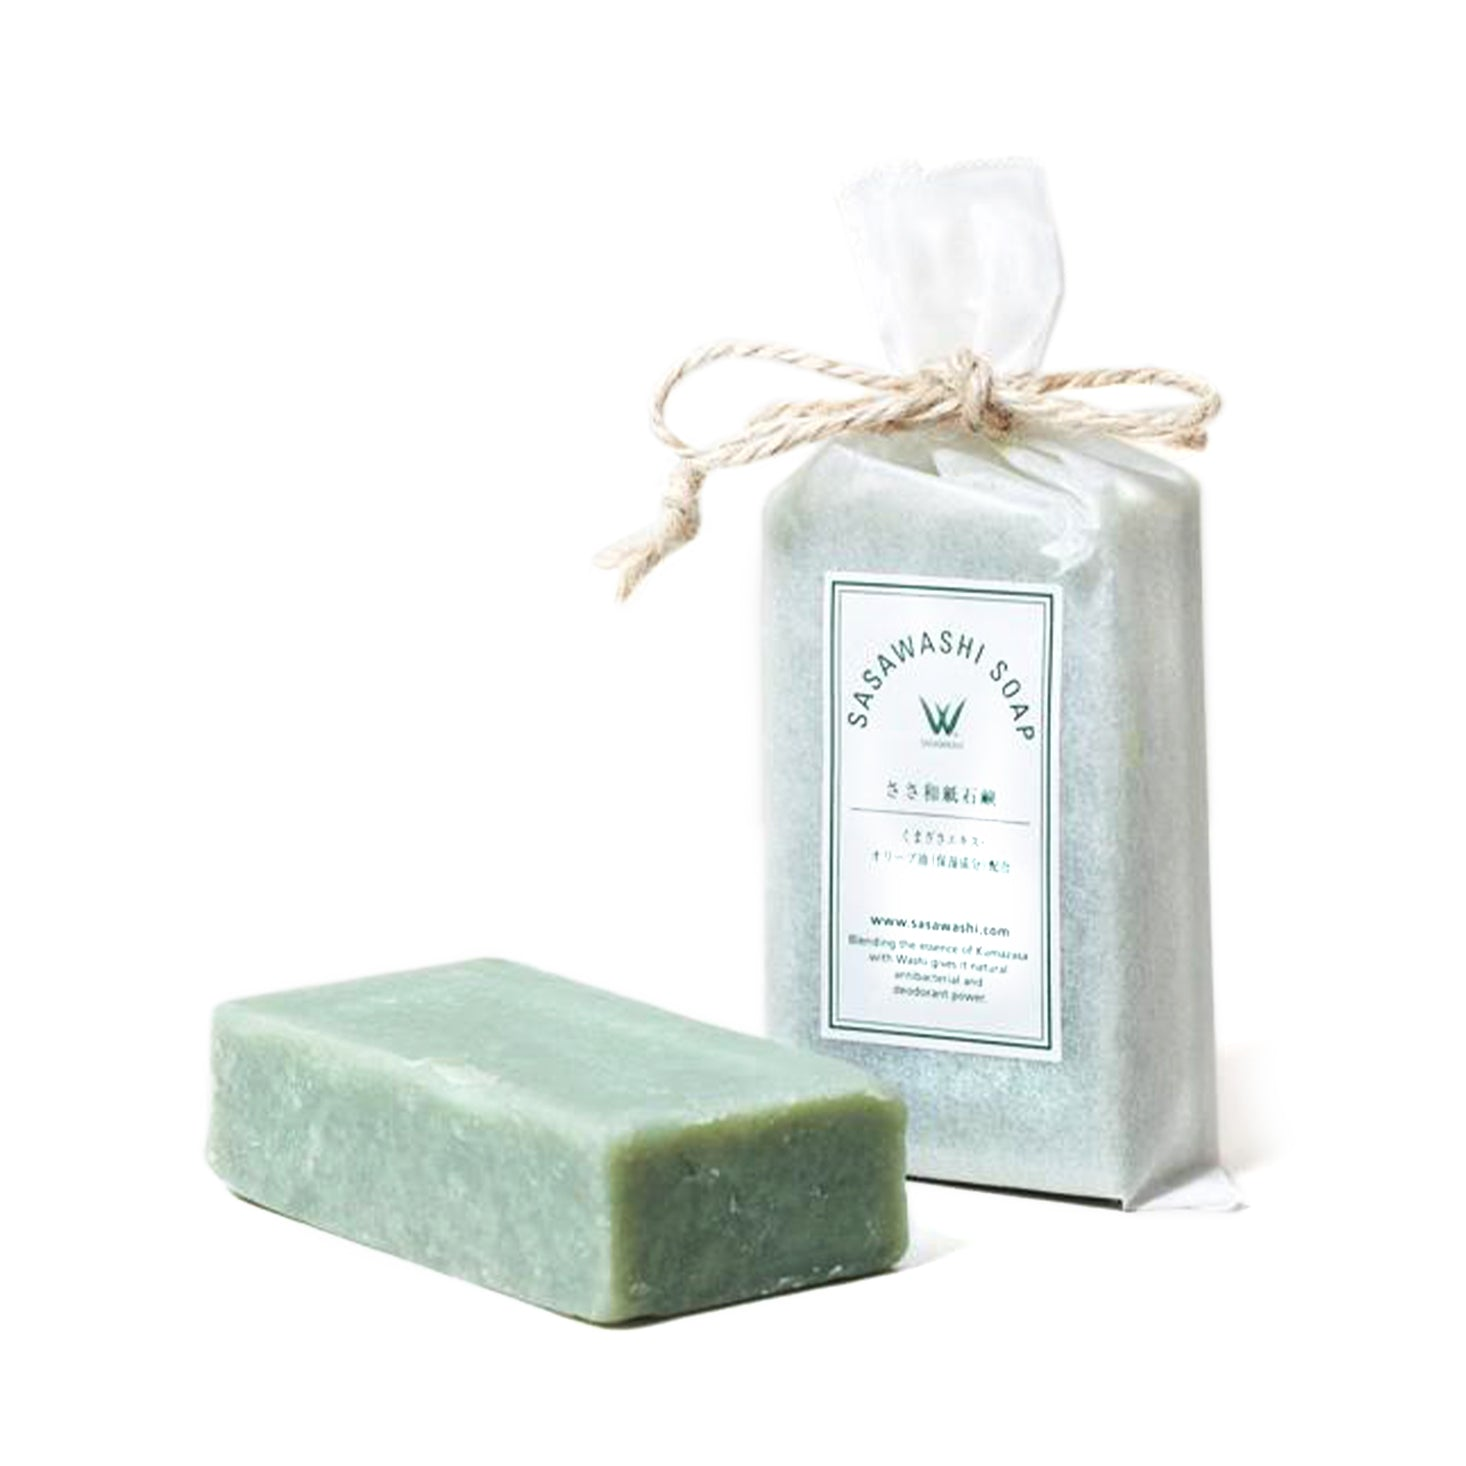 Sasawashi Olive Oil Soap